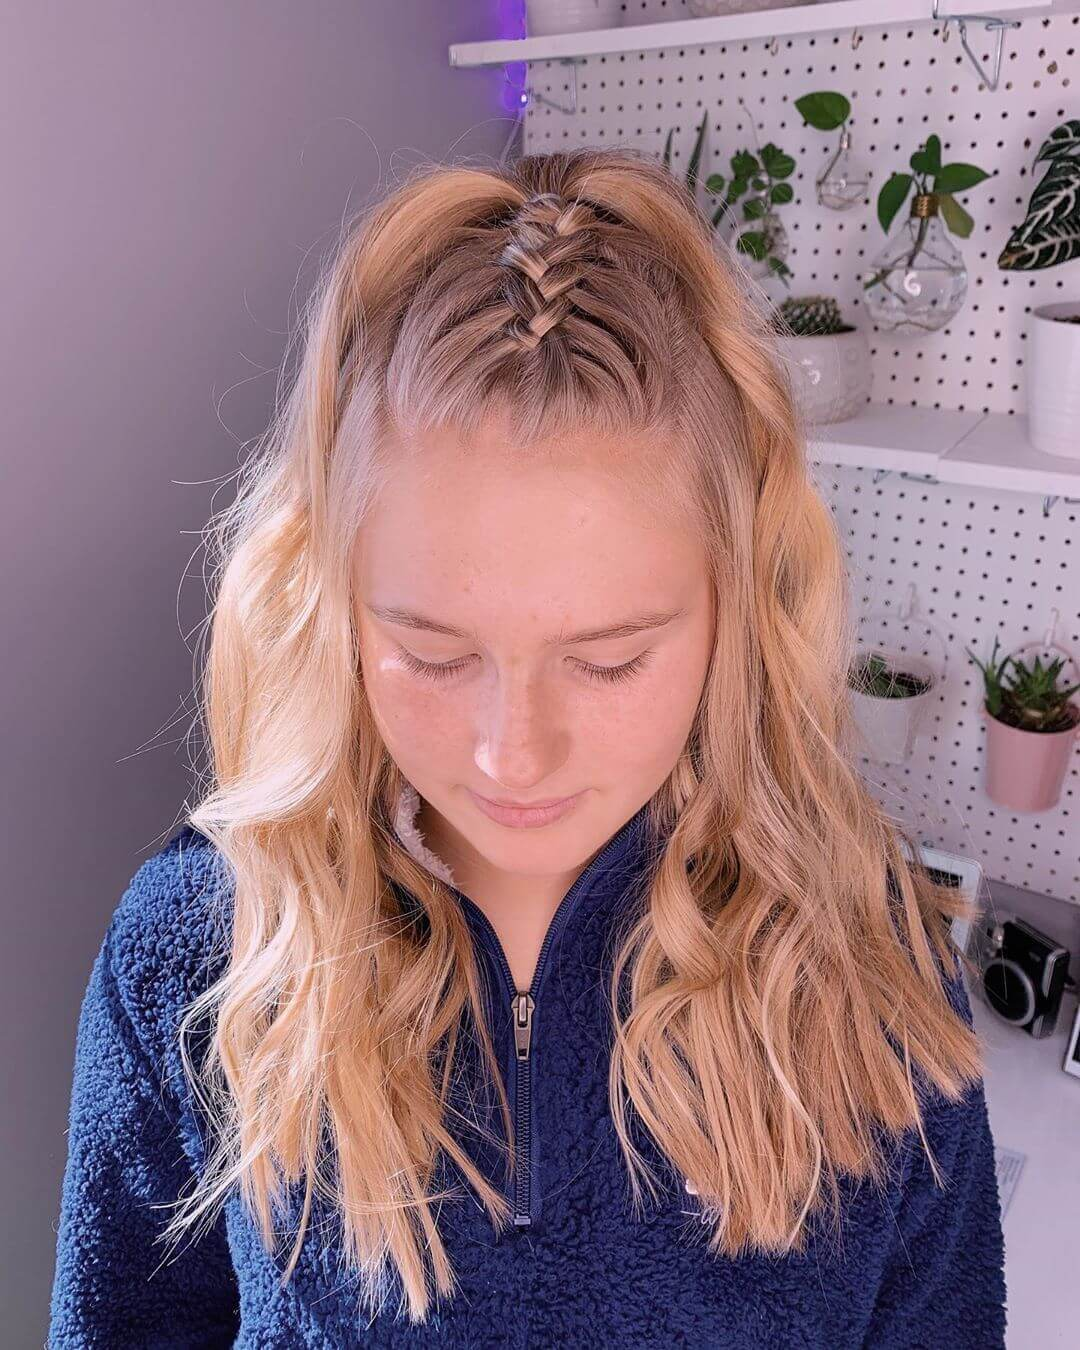 Braided Top With Wispy Curls